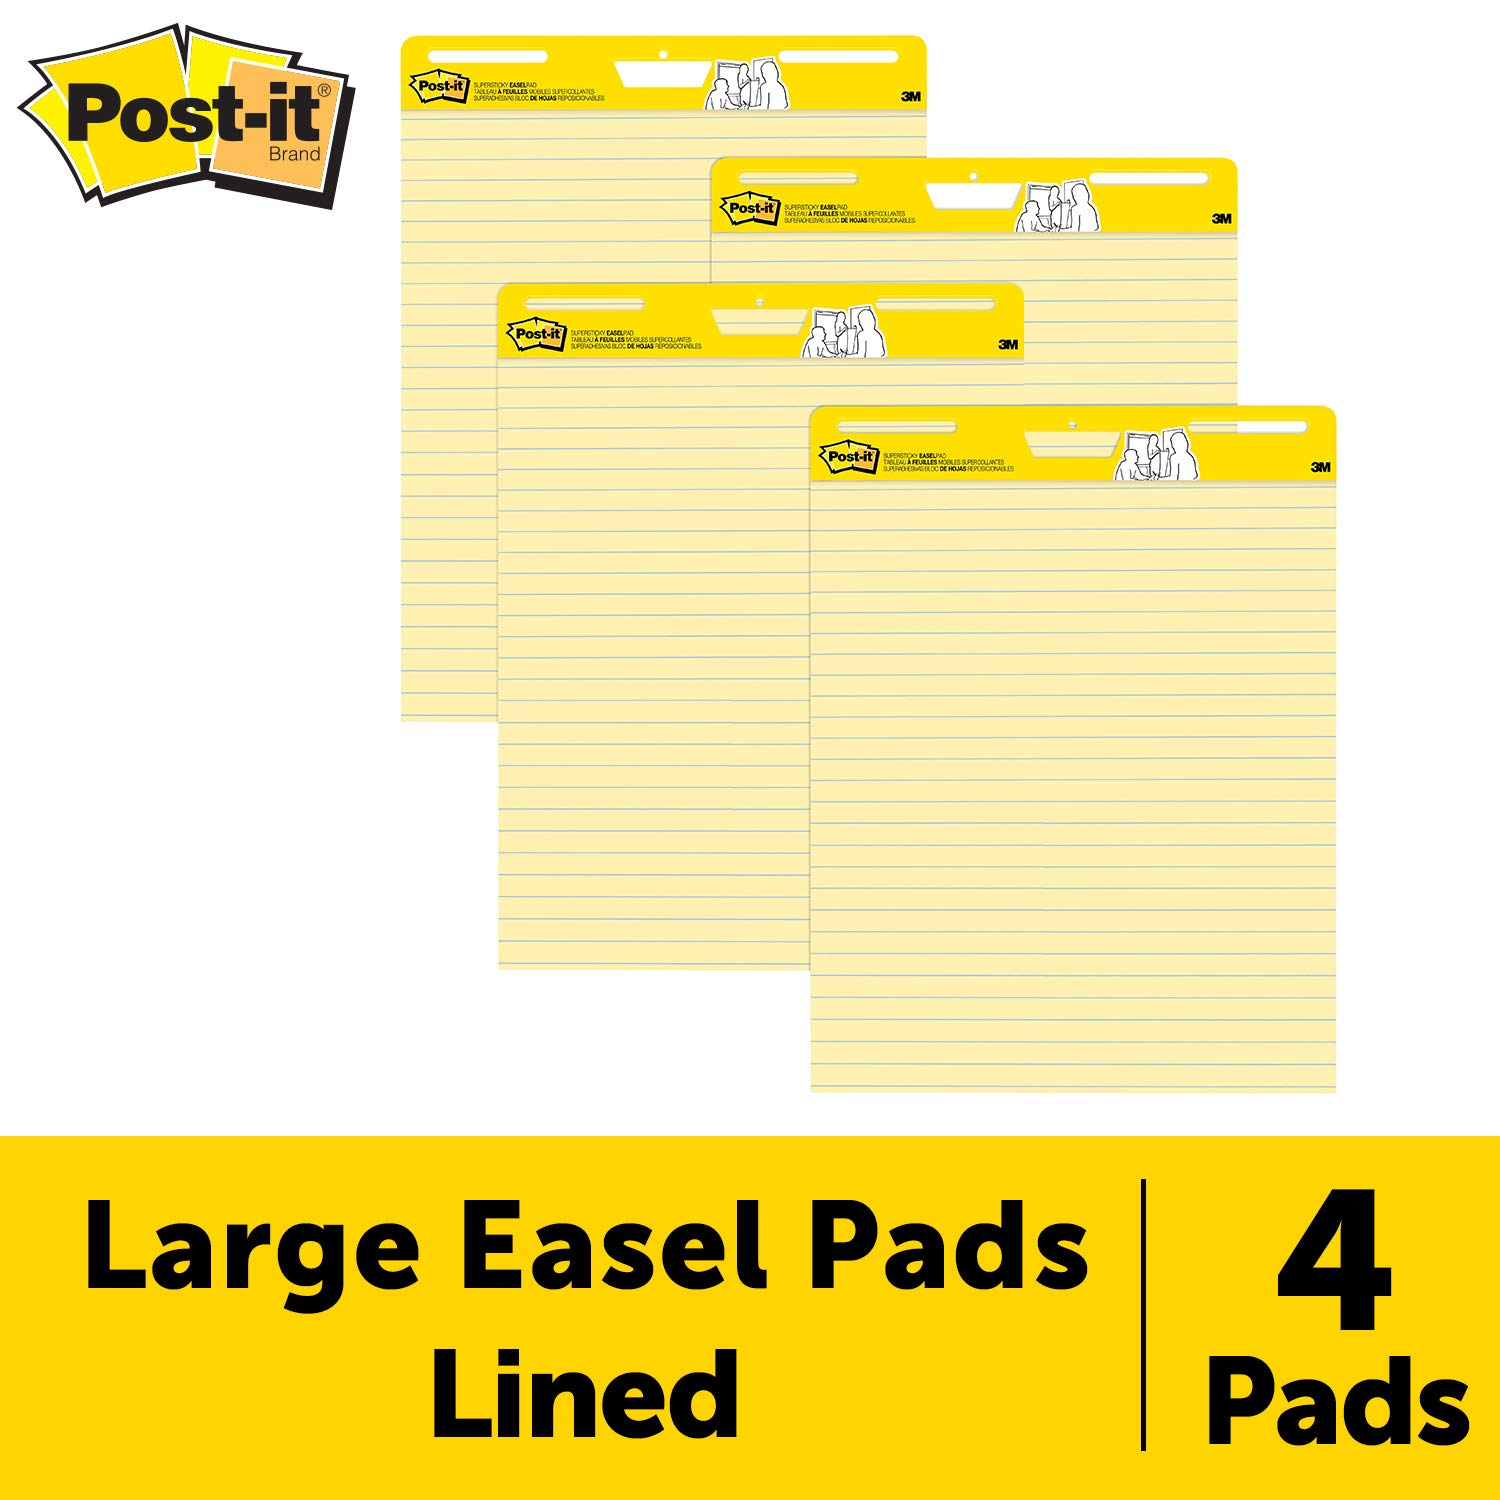 Post-it Super Sticky Easel Pad, 25 x 30 Inches, 30 Sheets/Pad, 4 Pads (561VAD4PK), Yellow Lined Premium Self Stick Flip Chart Paper, Super Sticking Power by Post-it